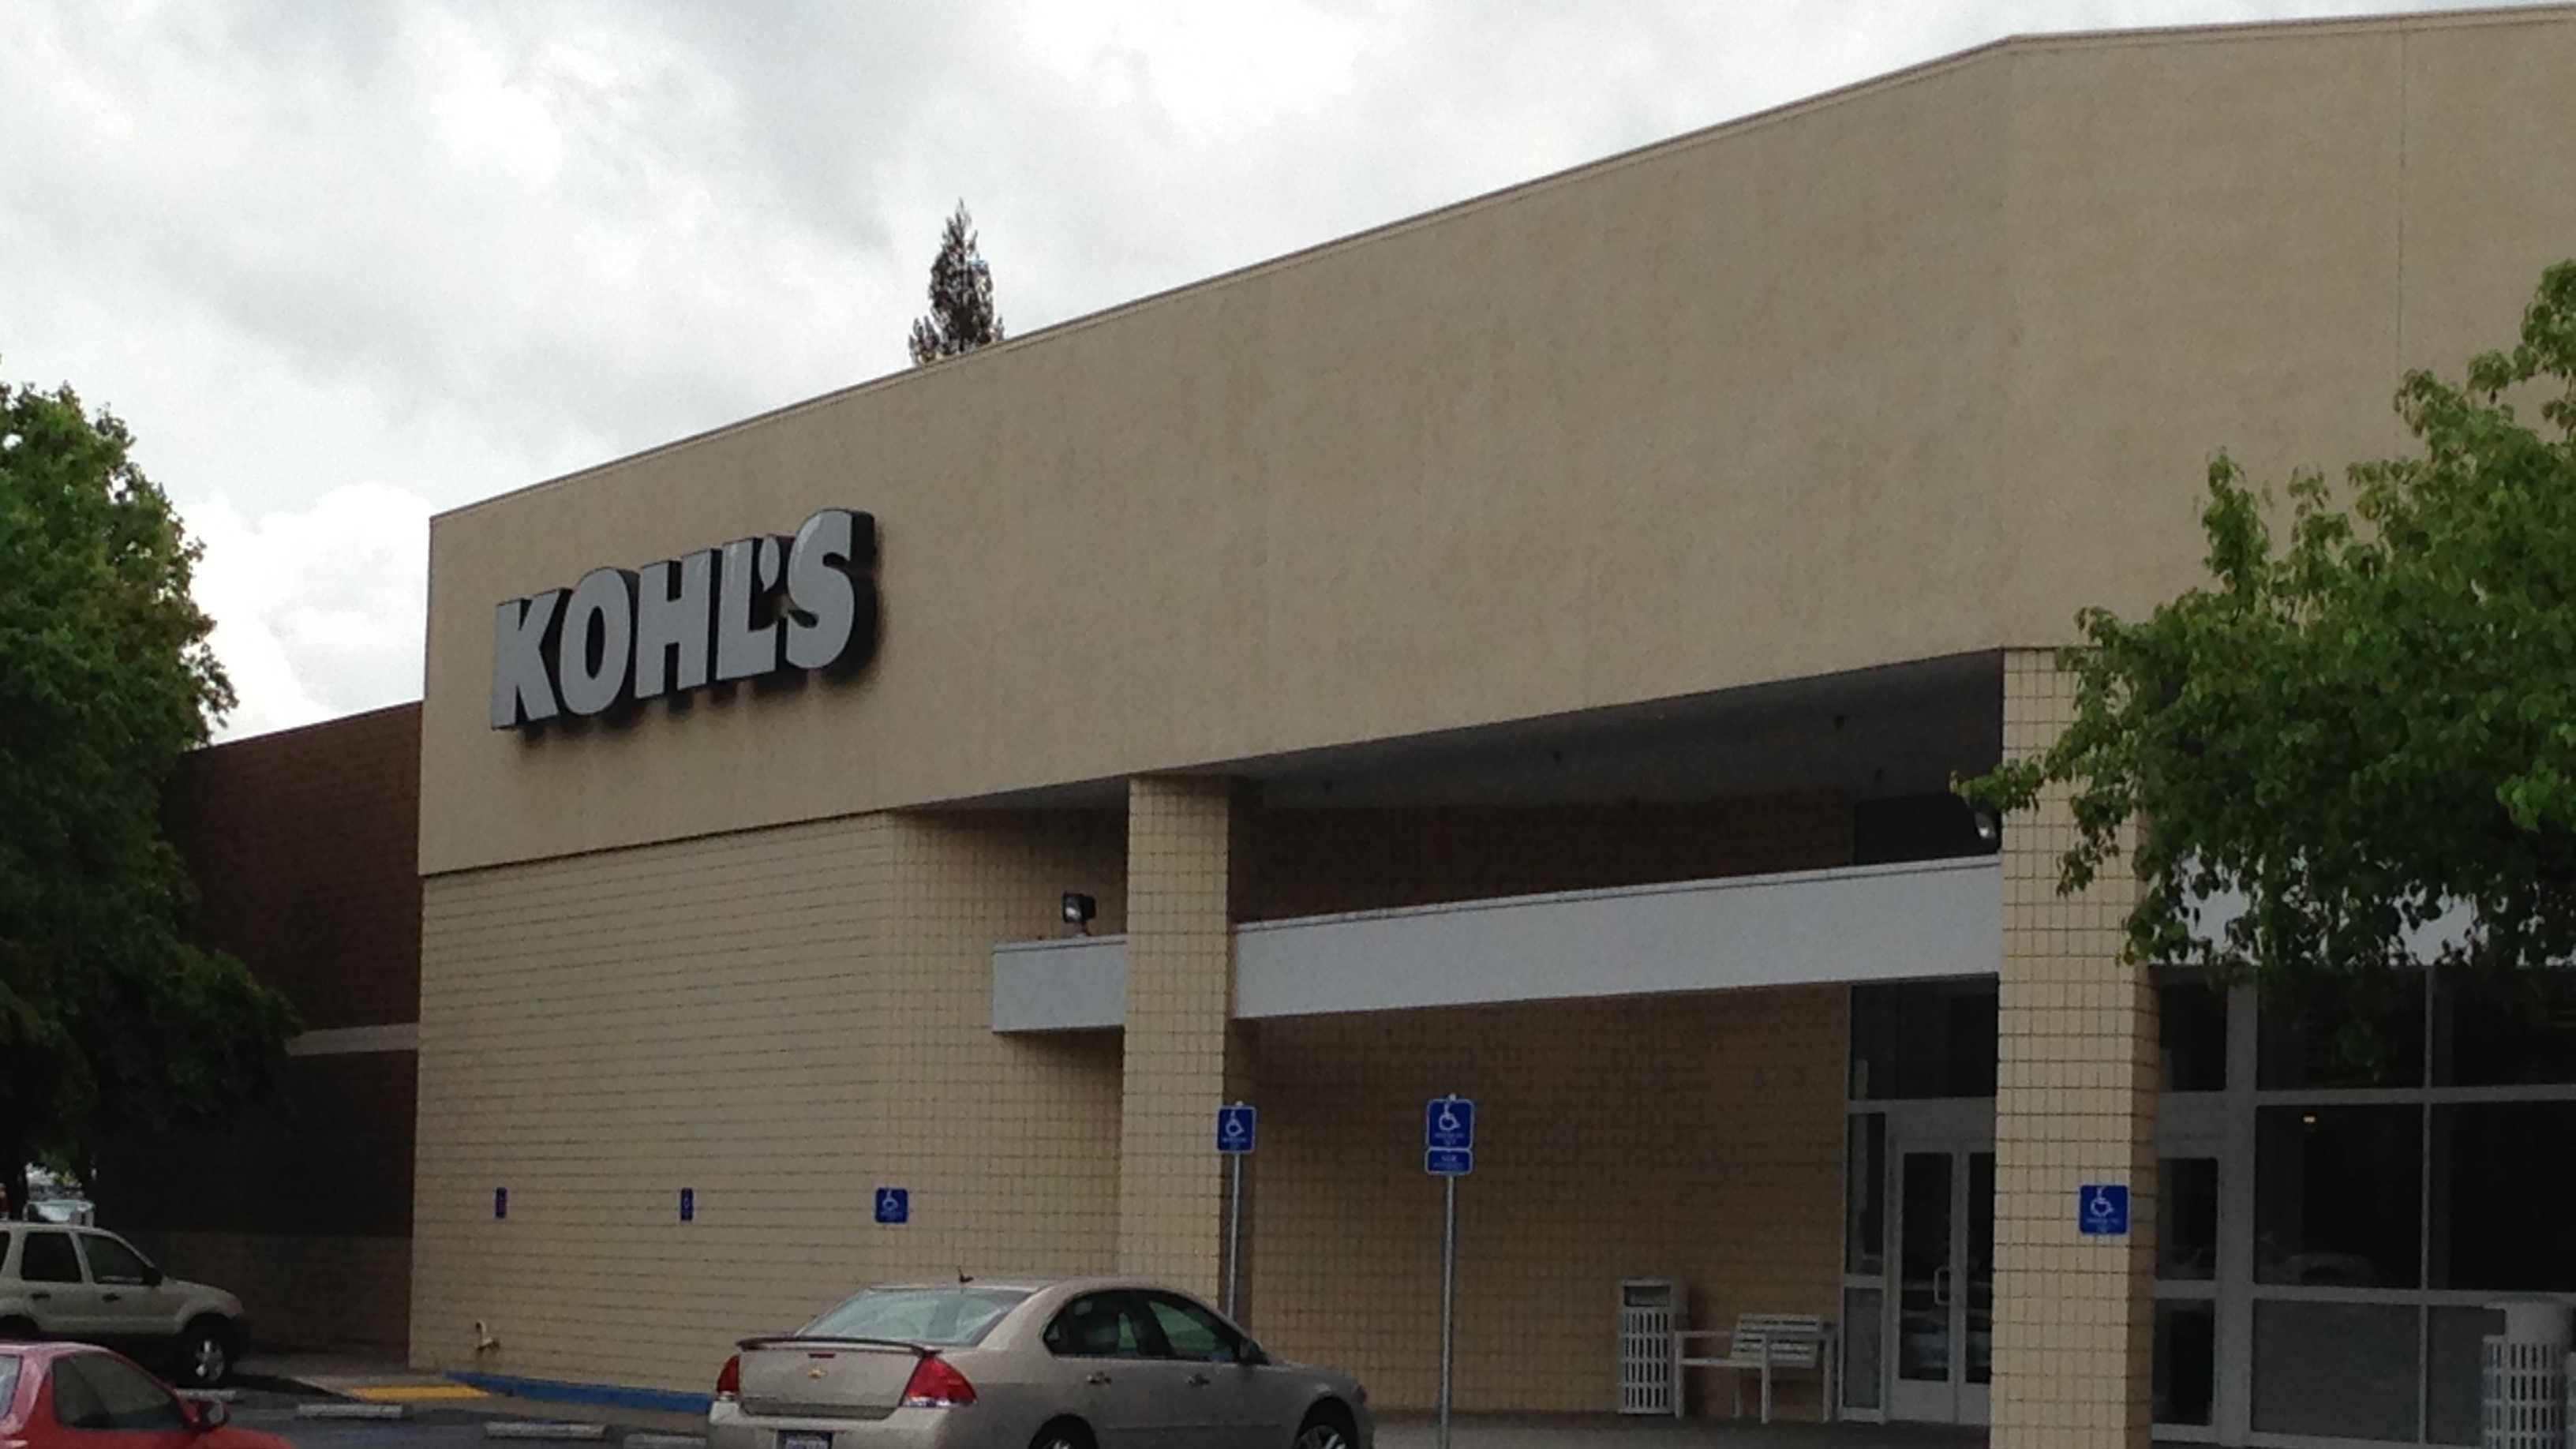 A woman said she discovered a security while inside a dressing room at this Kohl's Department Store in Rancho Cordova.